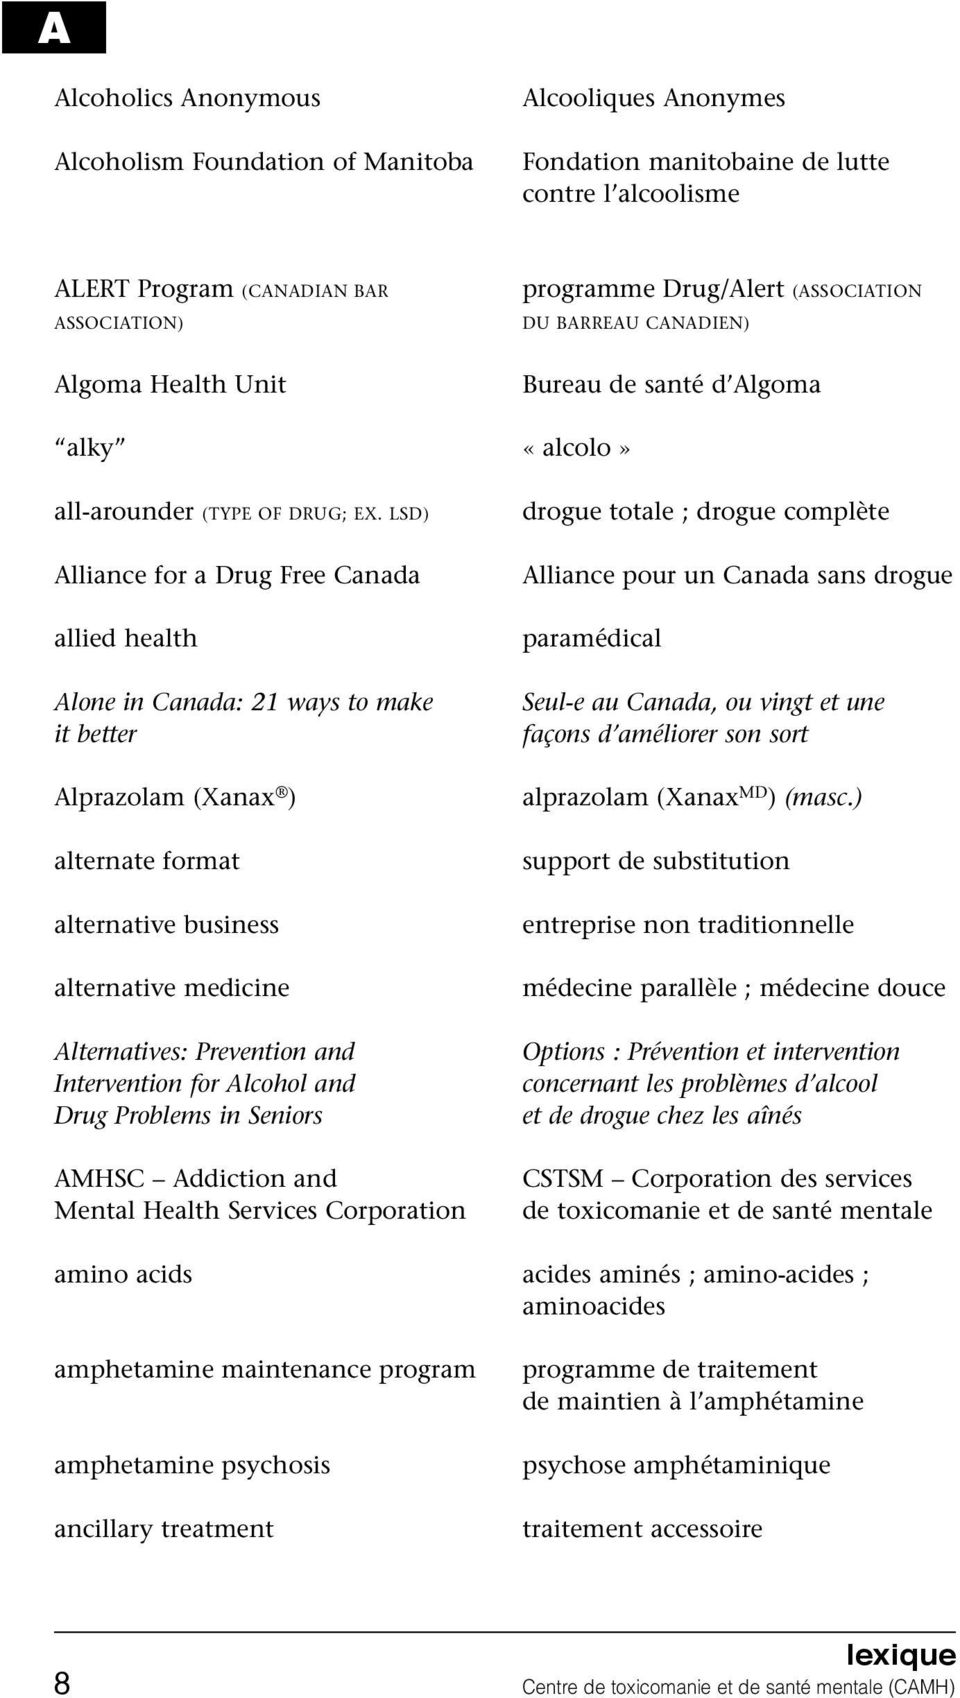 LSD) Alliance for a Drug Free Canada allied health Alone in Canada: 21 ways to make it better Alprazolam (Xanax ) alternate format alternative business alternative medicine Alternatives: Prevention